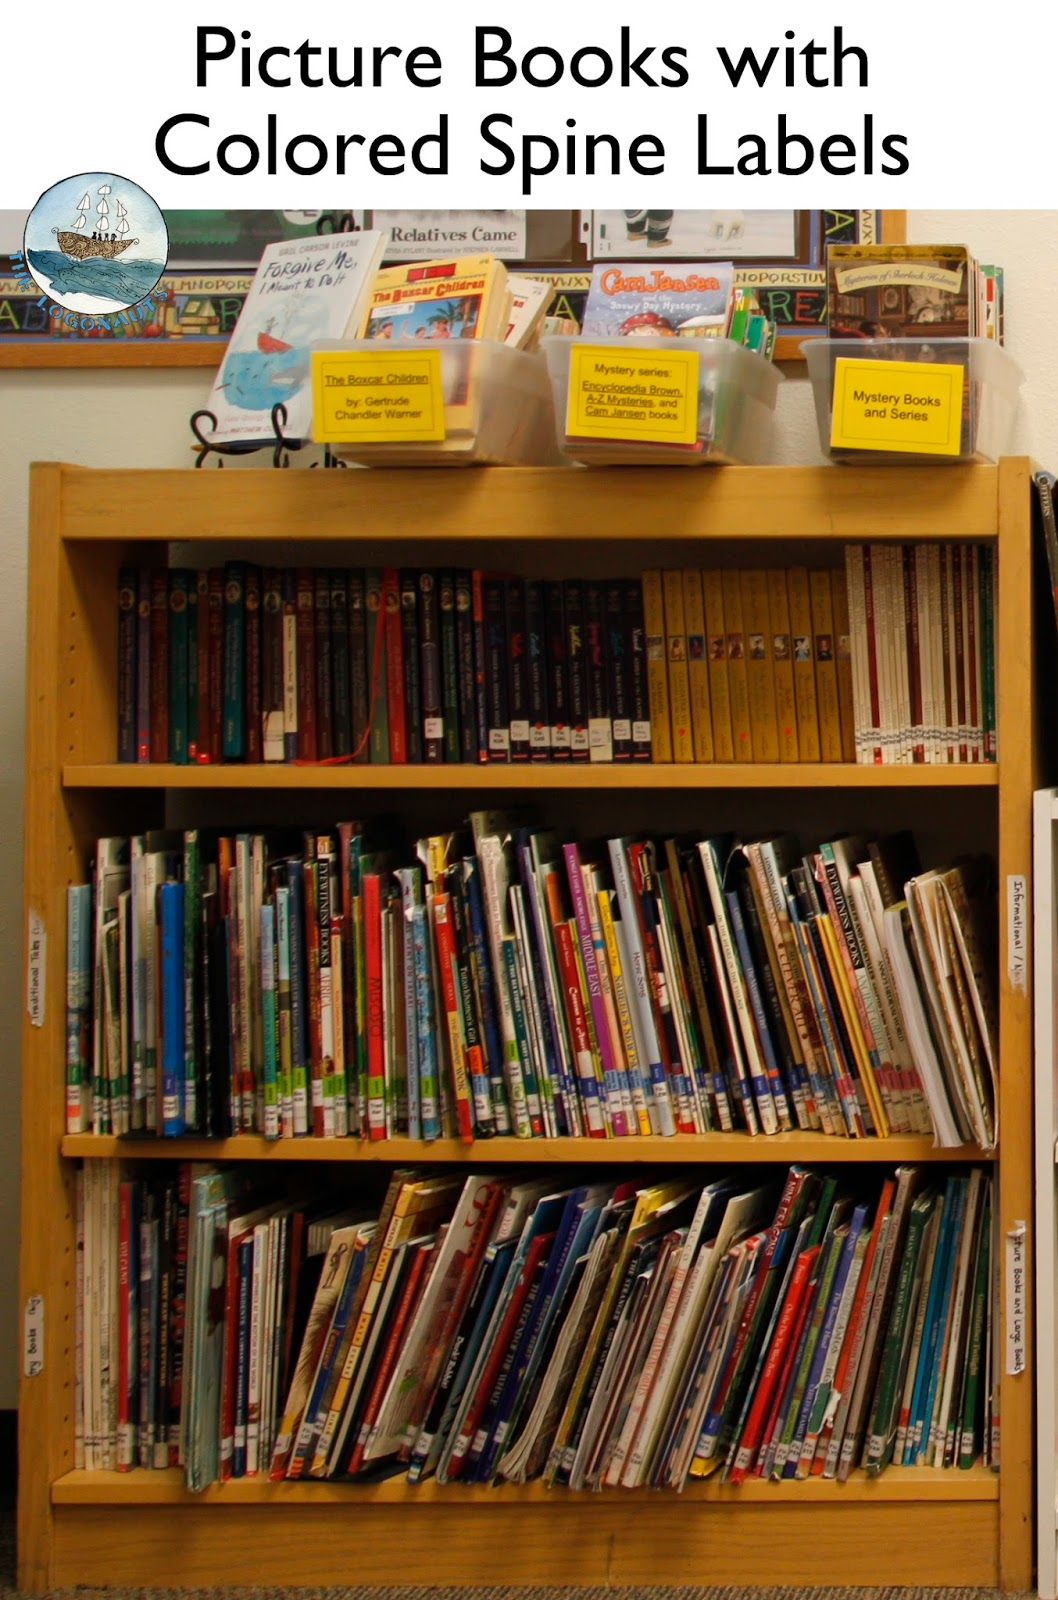 Picture Books with Colored Spine Labels - Organizing the Classroom Library | The Logonauts